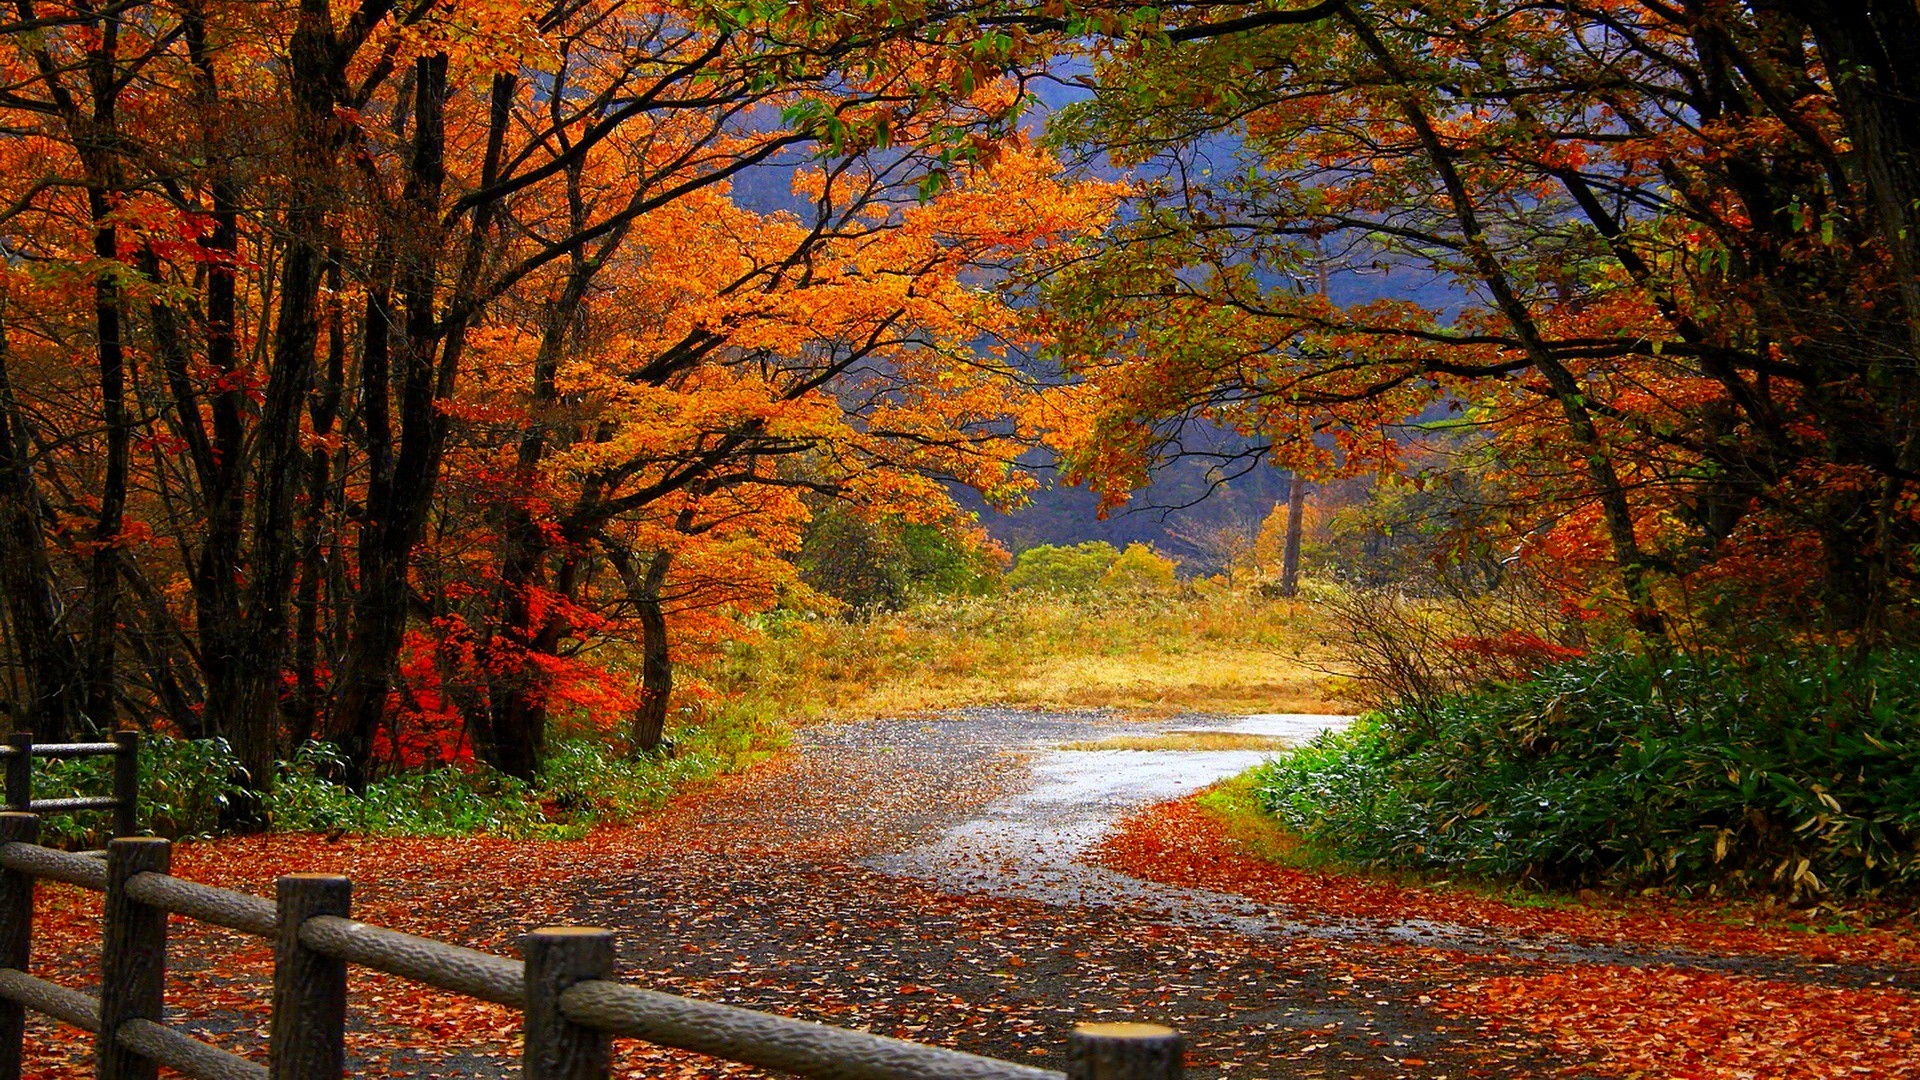 Autumn Computer Wallpapers Desktop Backgrounds